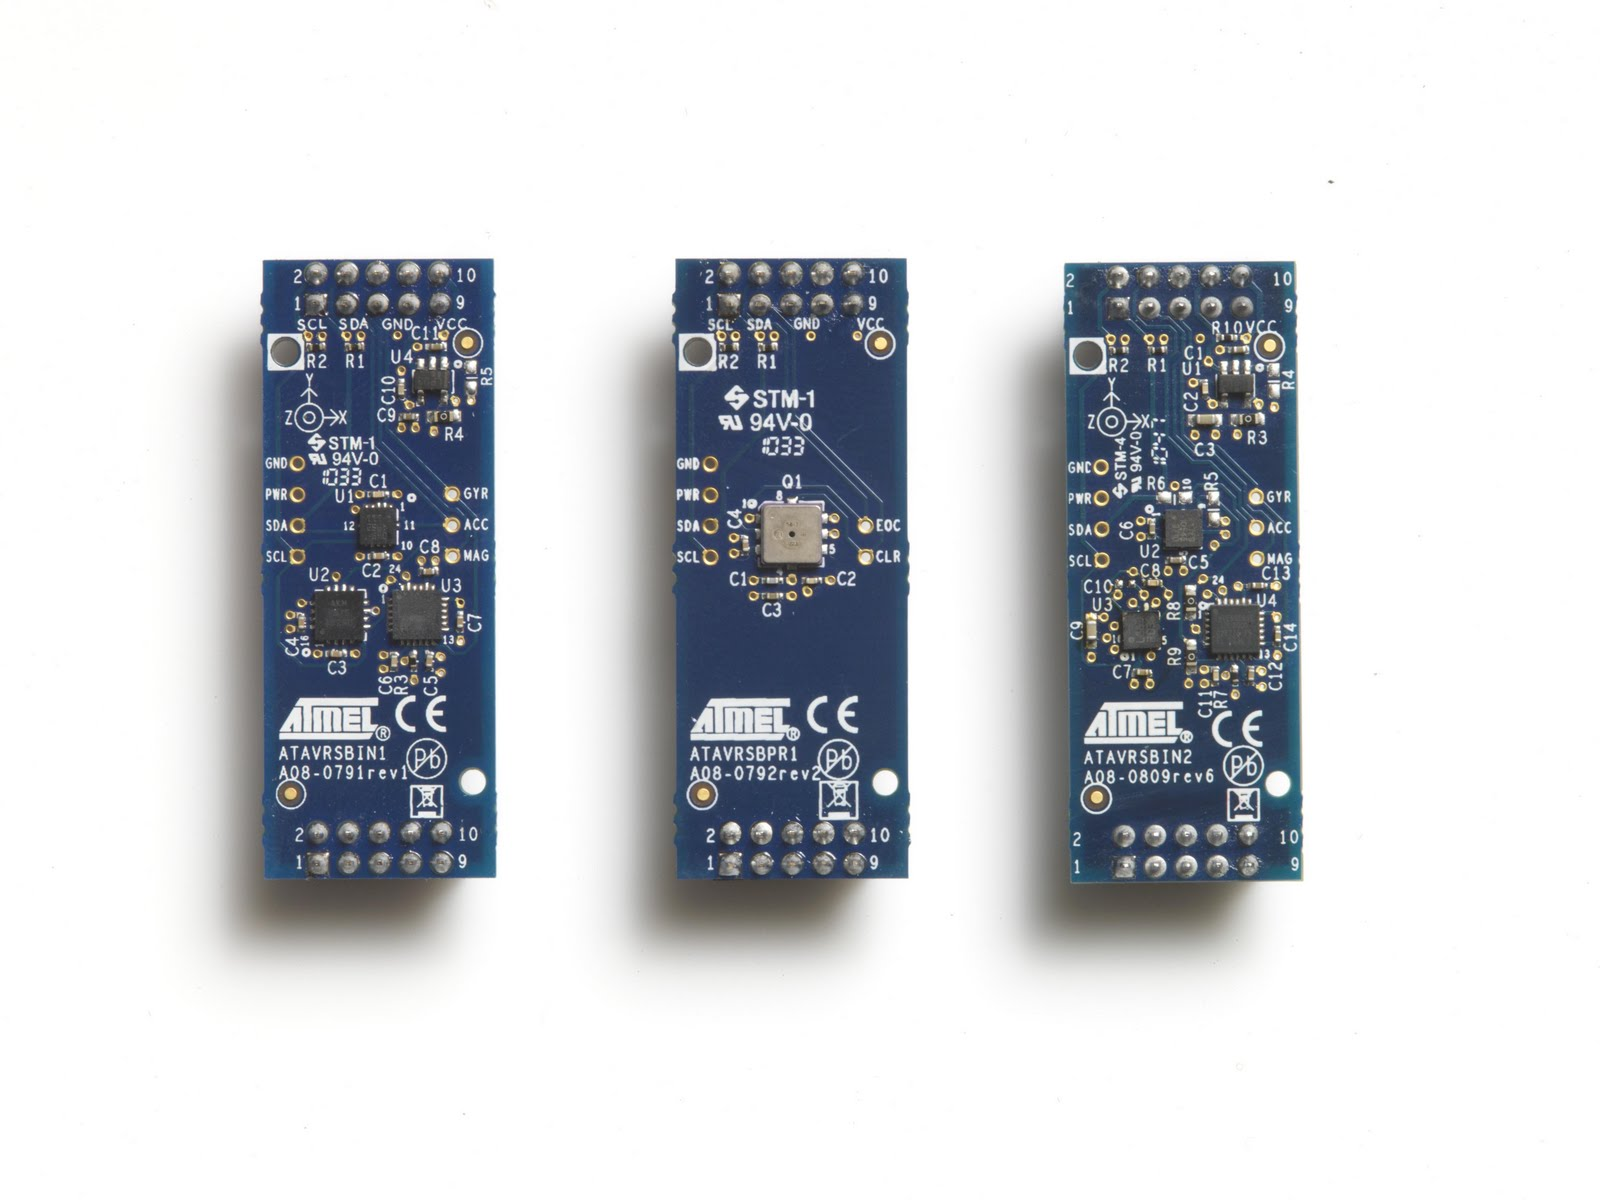 Ee Daily News Two Product Related Announcements From Atmel This Week Avr Mcu Family Expanded